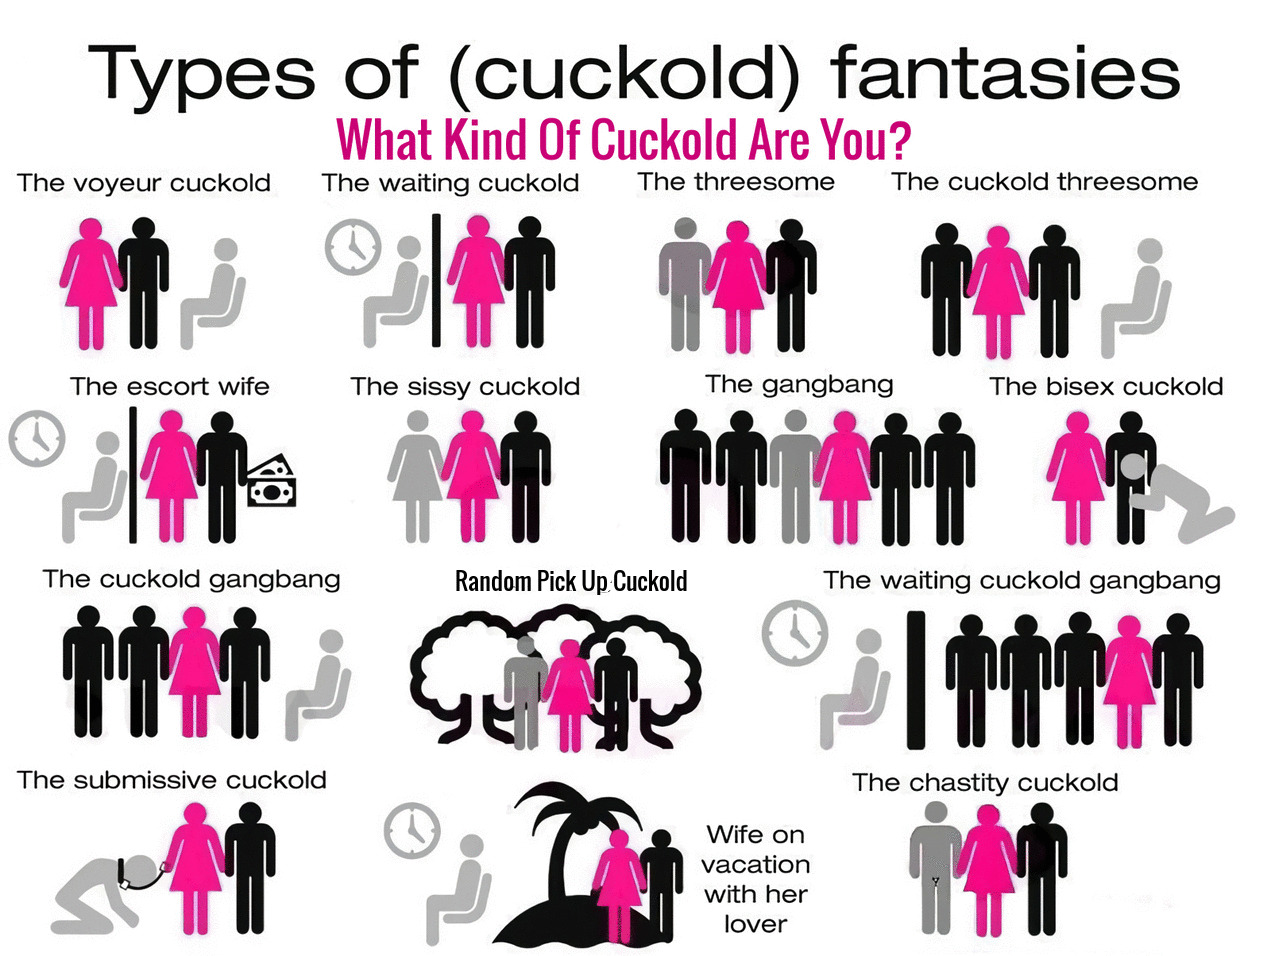 What Kind Of Cuckold Are You?